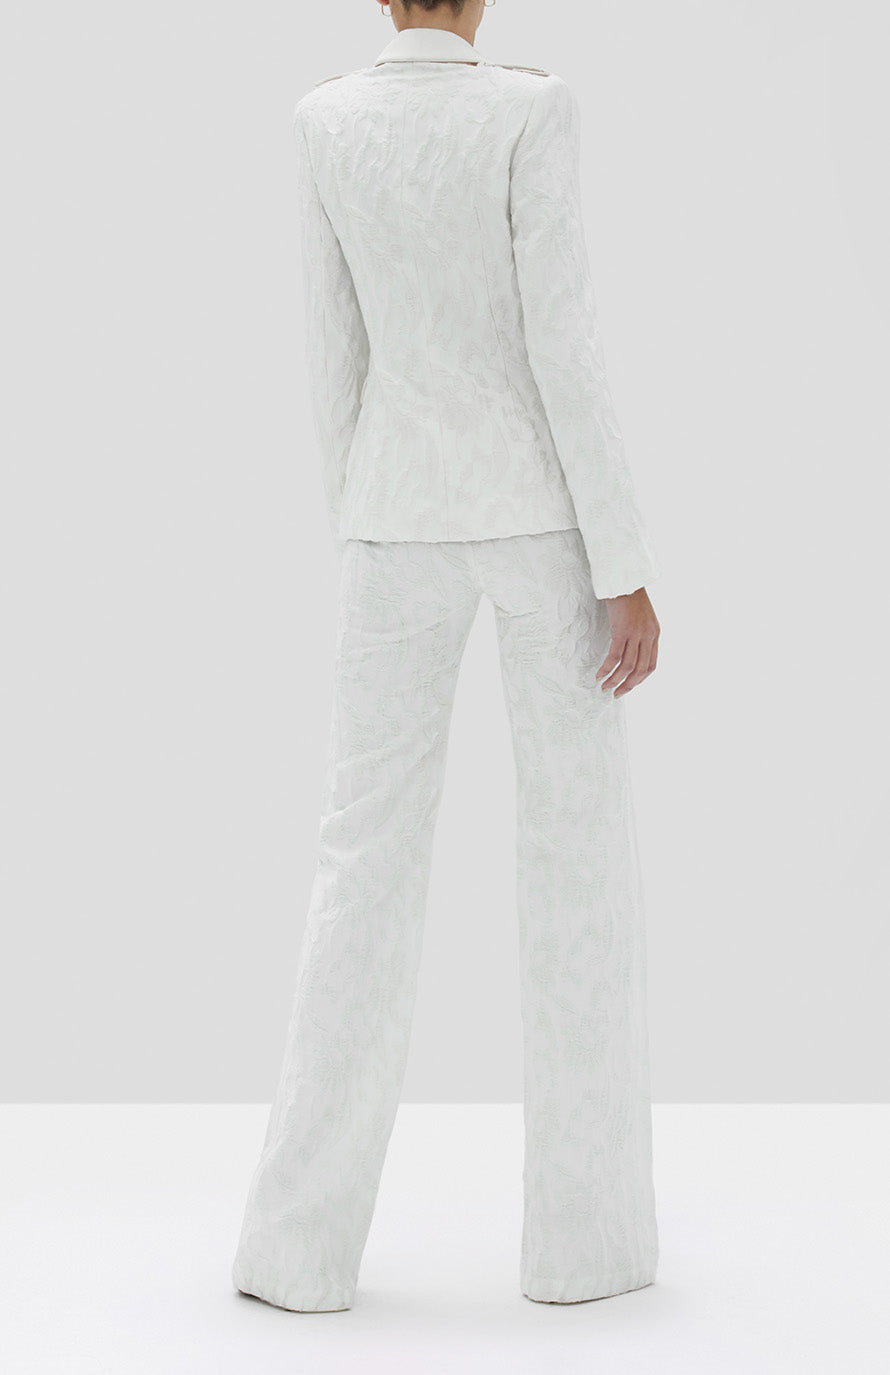 Alexis Claudya Jacket and Bouras Pant in White Floral Jacquard from the Fall Winter 2019 Ready To Wear Collection - Rear View